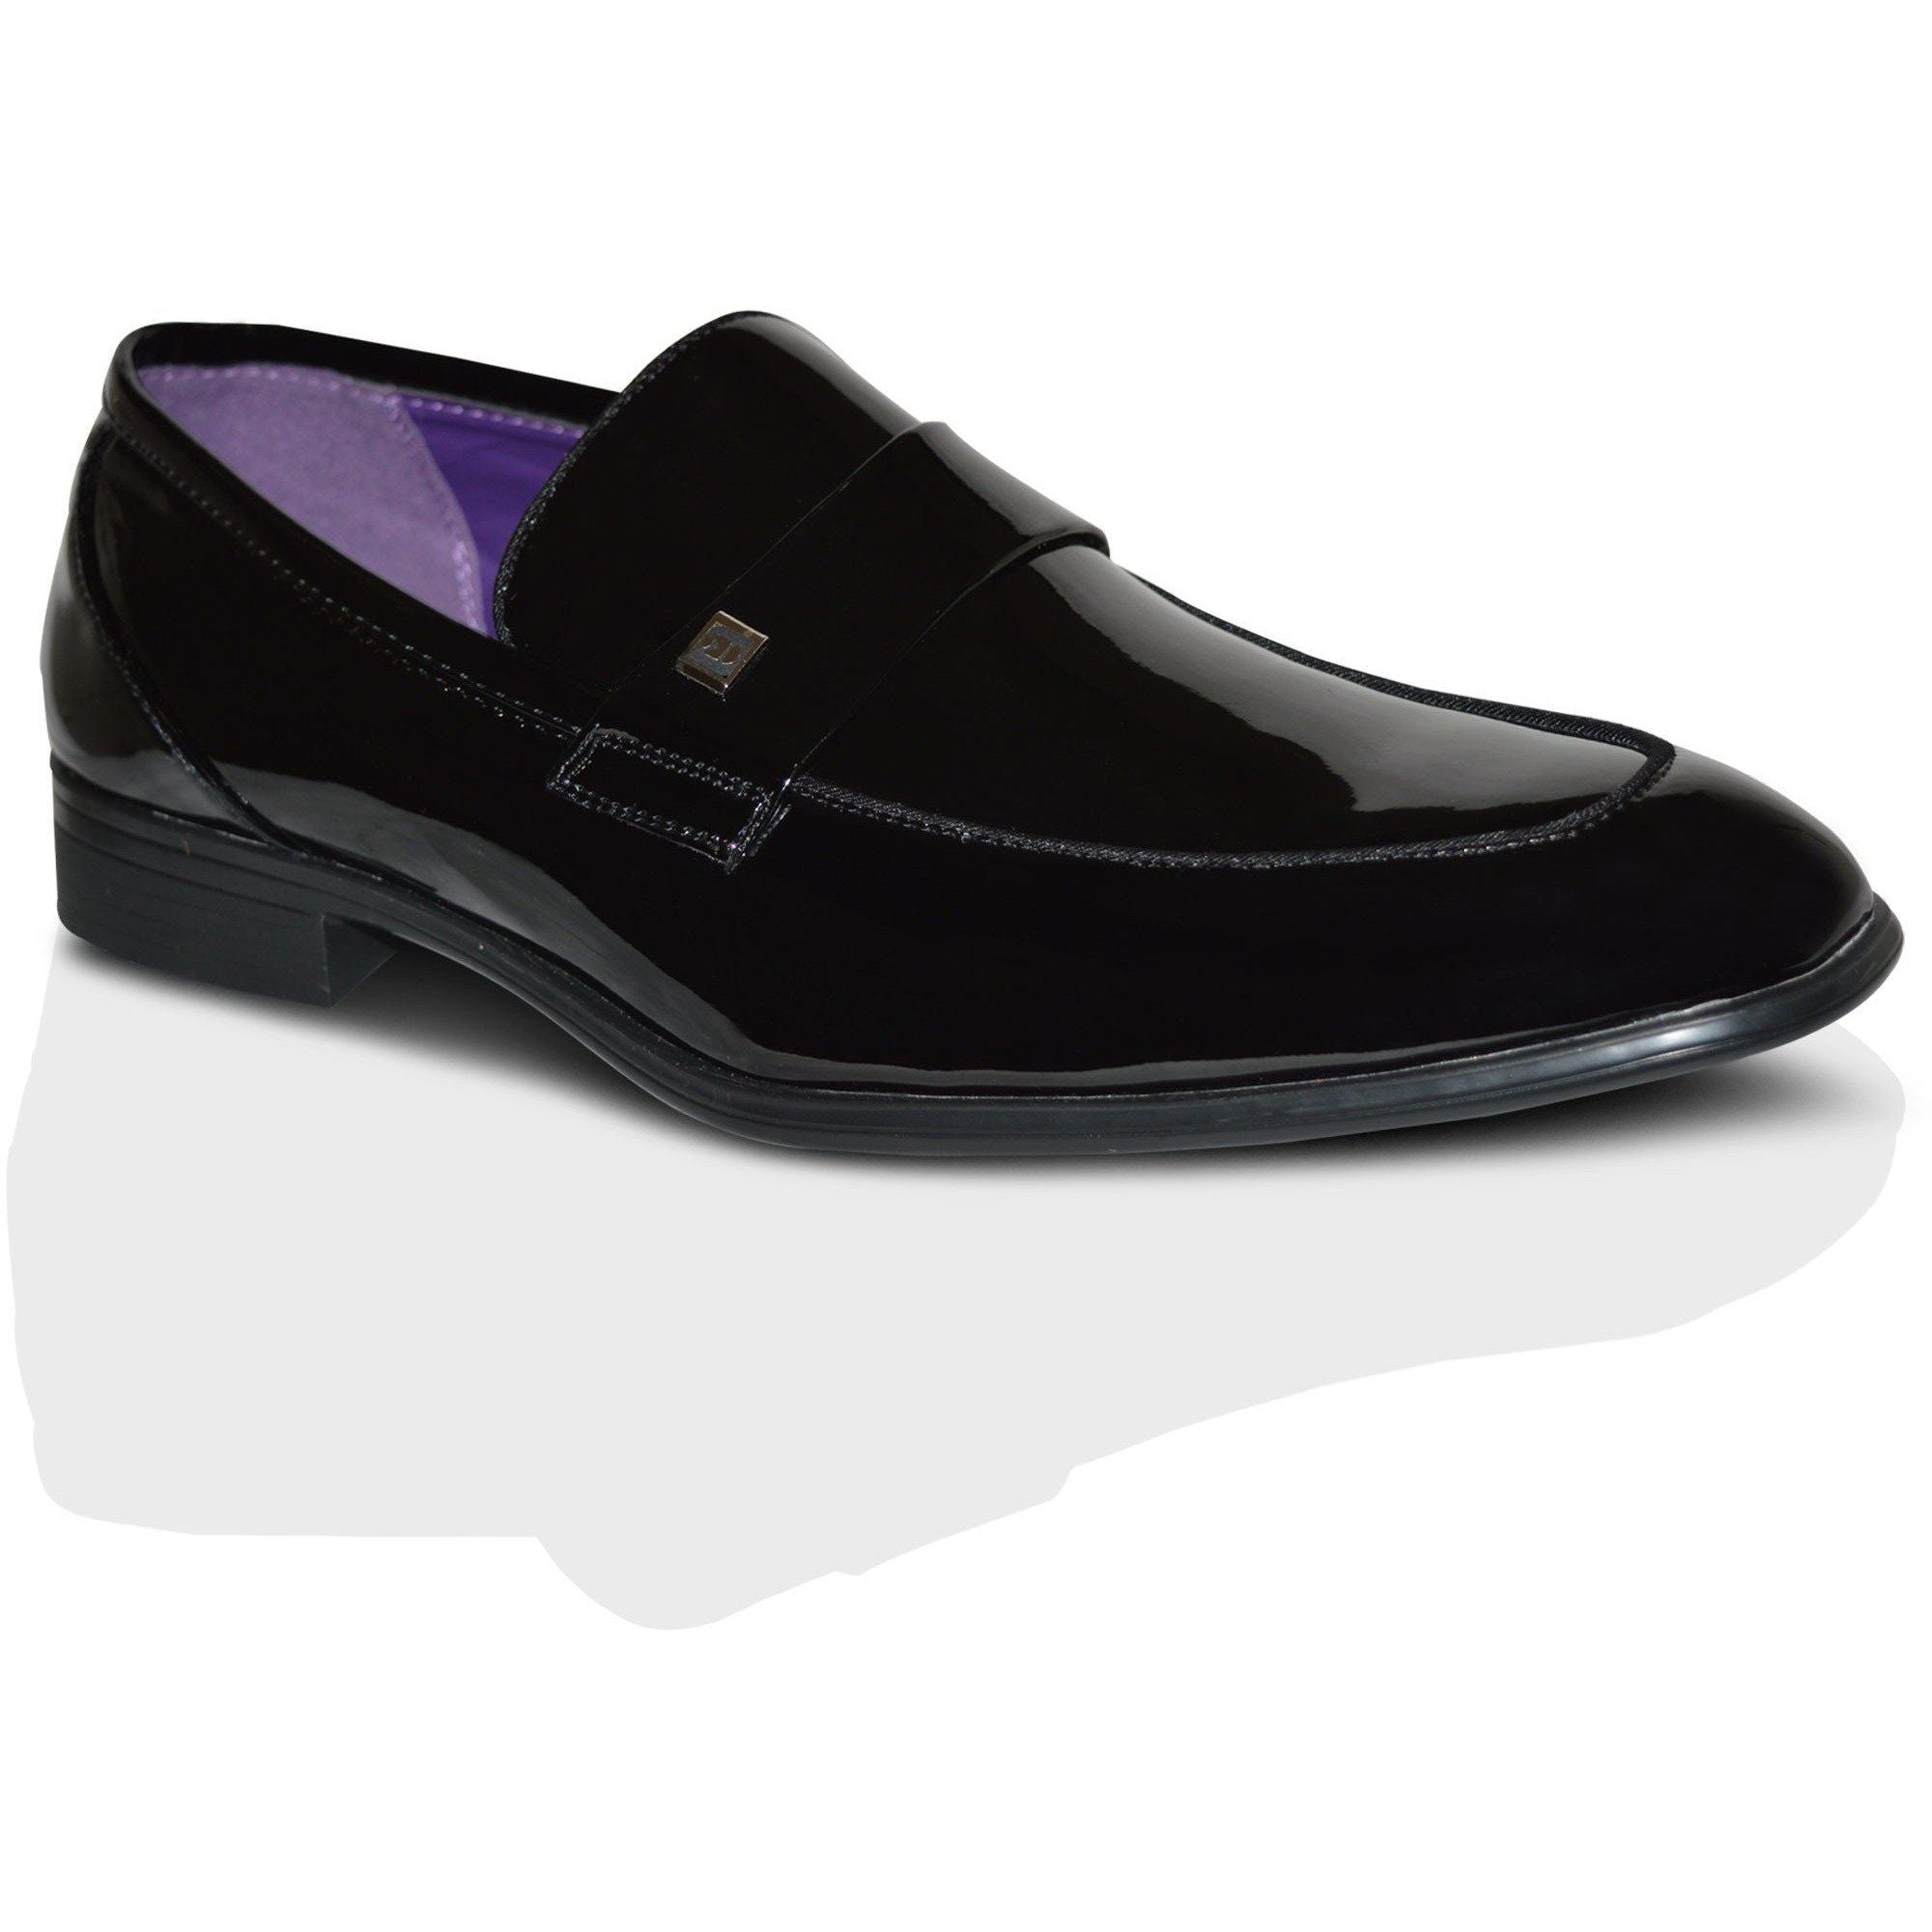 2e7e2bcec9884 Mens Italian Black Leather Patent Formal Dress Slip On Shoes